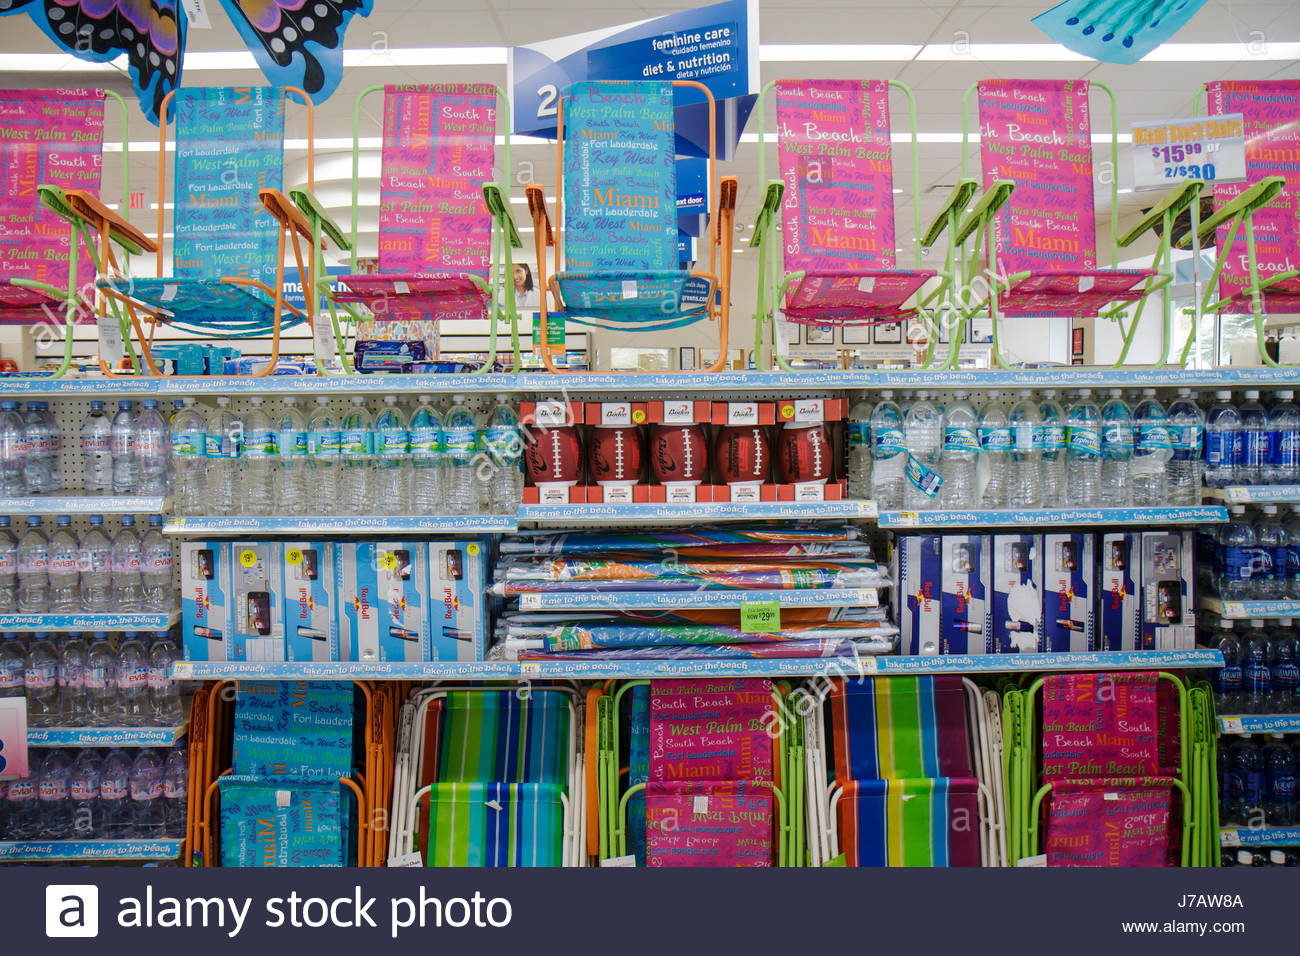 Charmant Miami Beach Florida Walgreens Pharmacy Drugstore Retail Display For Sale  Folding Chairs Bottled Water   Stock